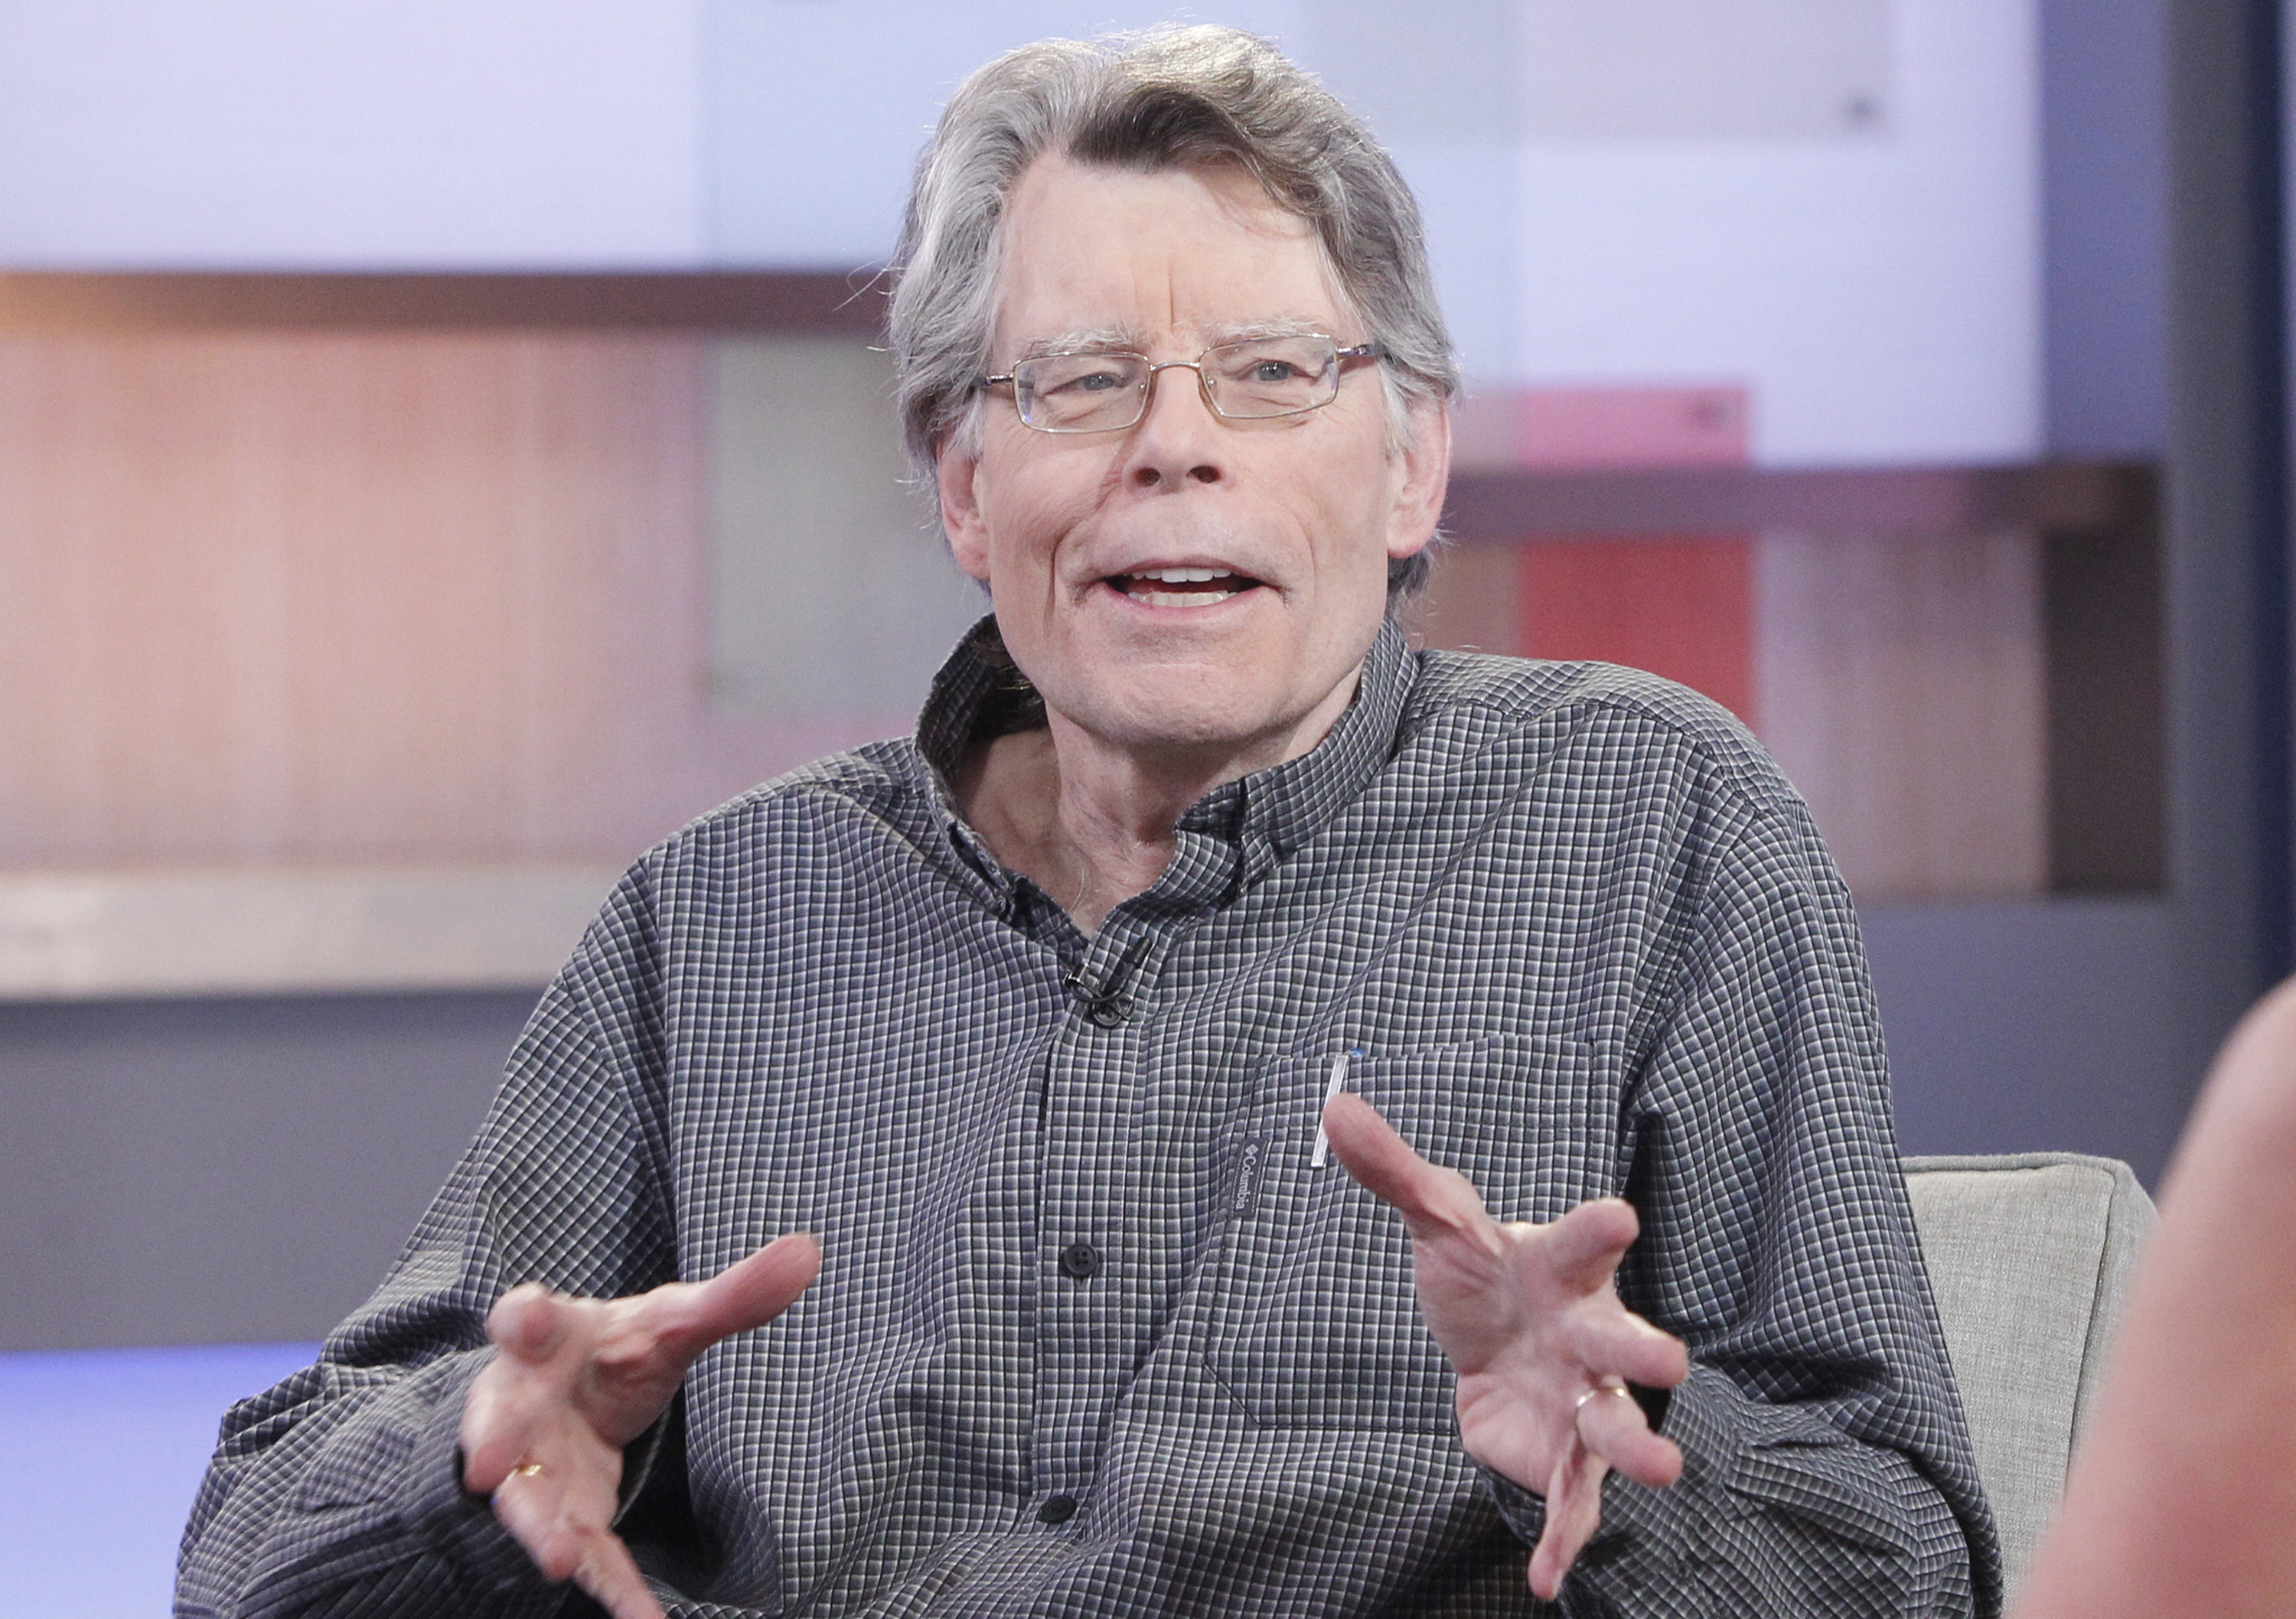 Stephen King talking to someone while sitting and gesturing with his hands